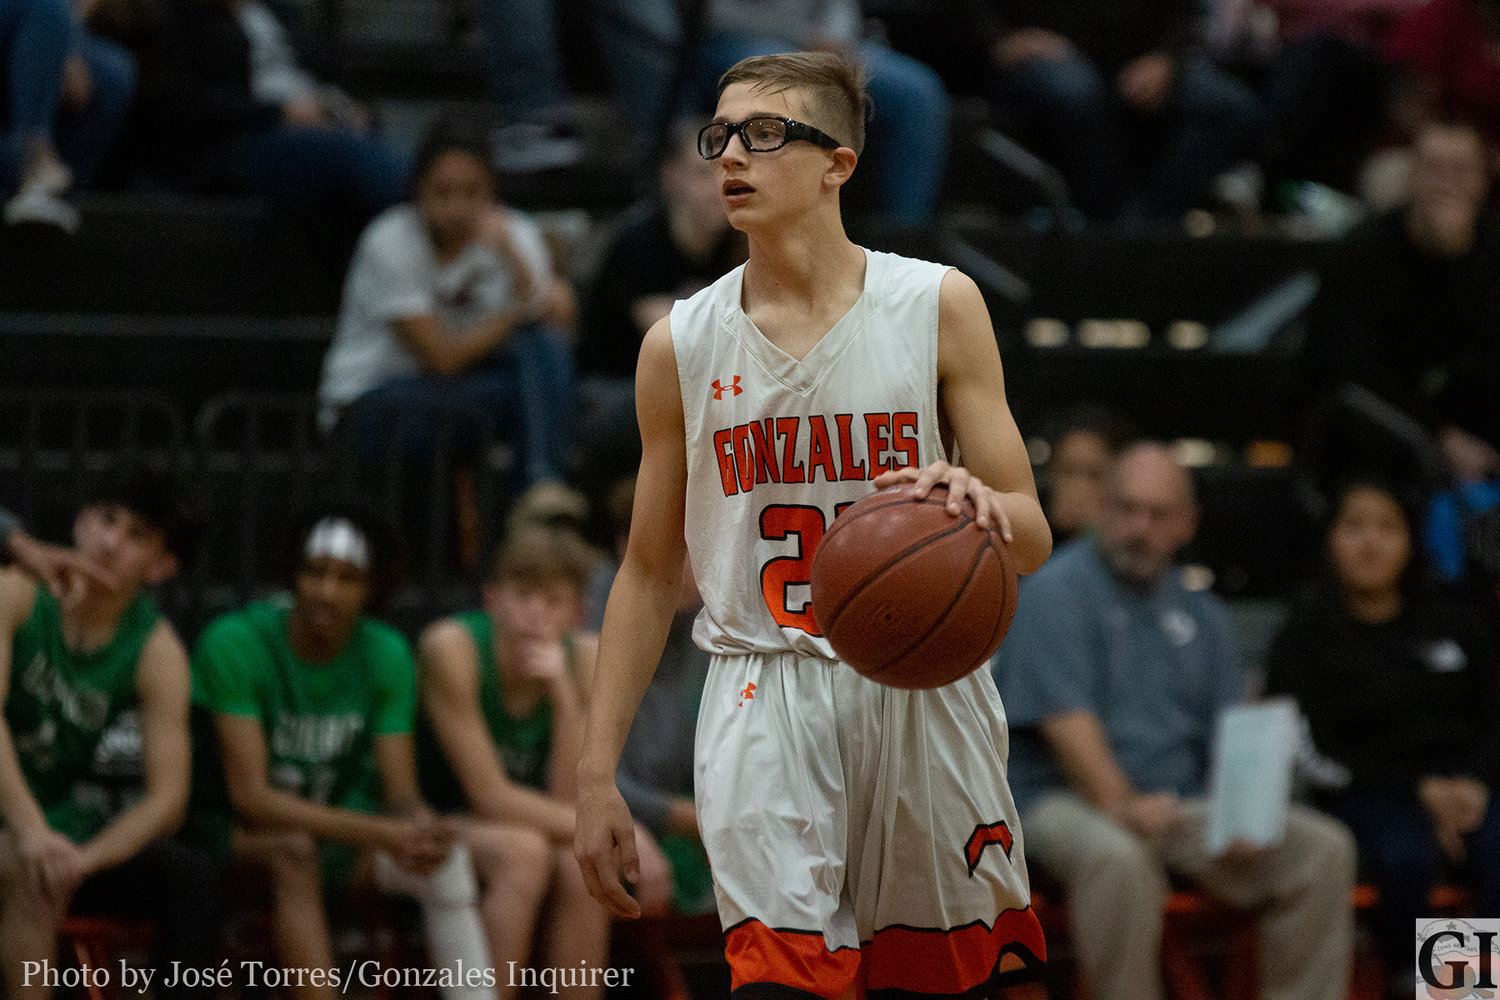 Jaydyn Lookabill (21) played significant minutes in Gonzales' 48-43 loss against Cuero on Tuesday.